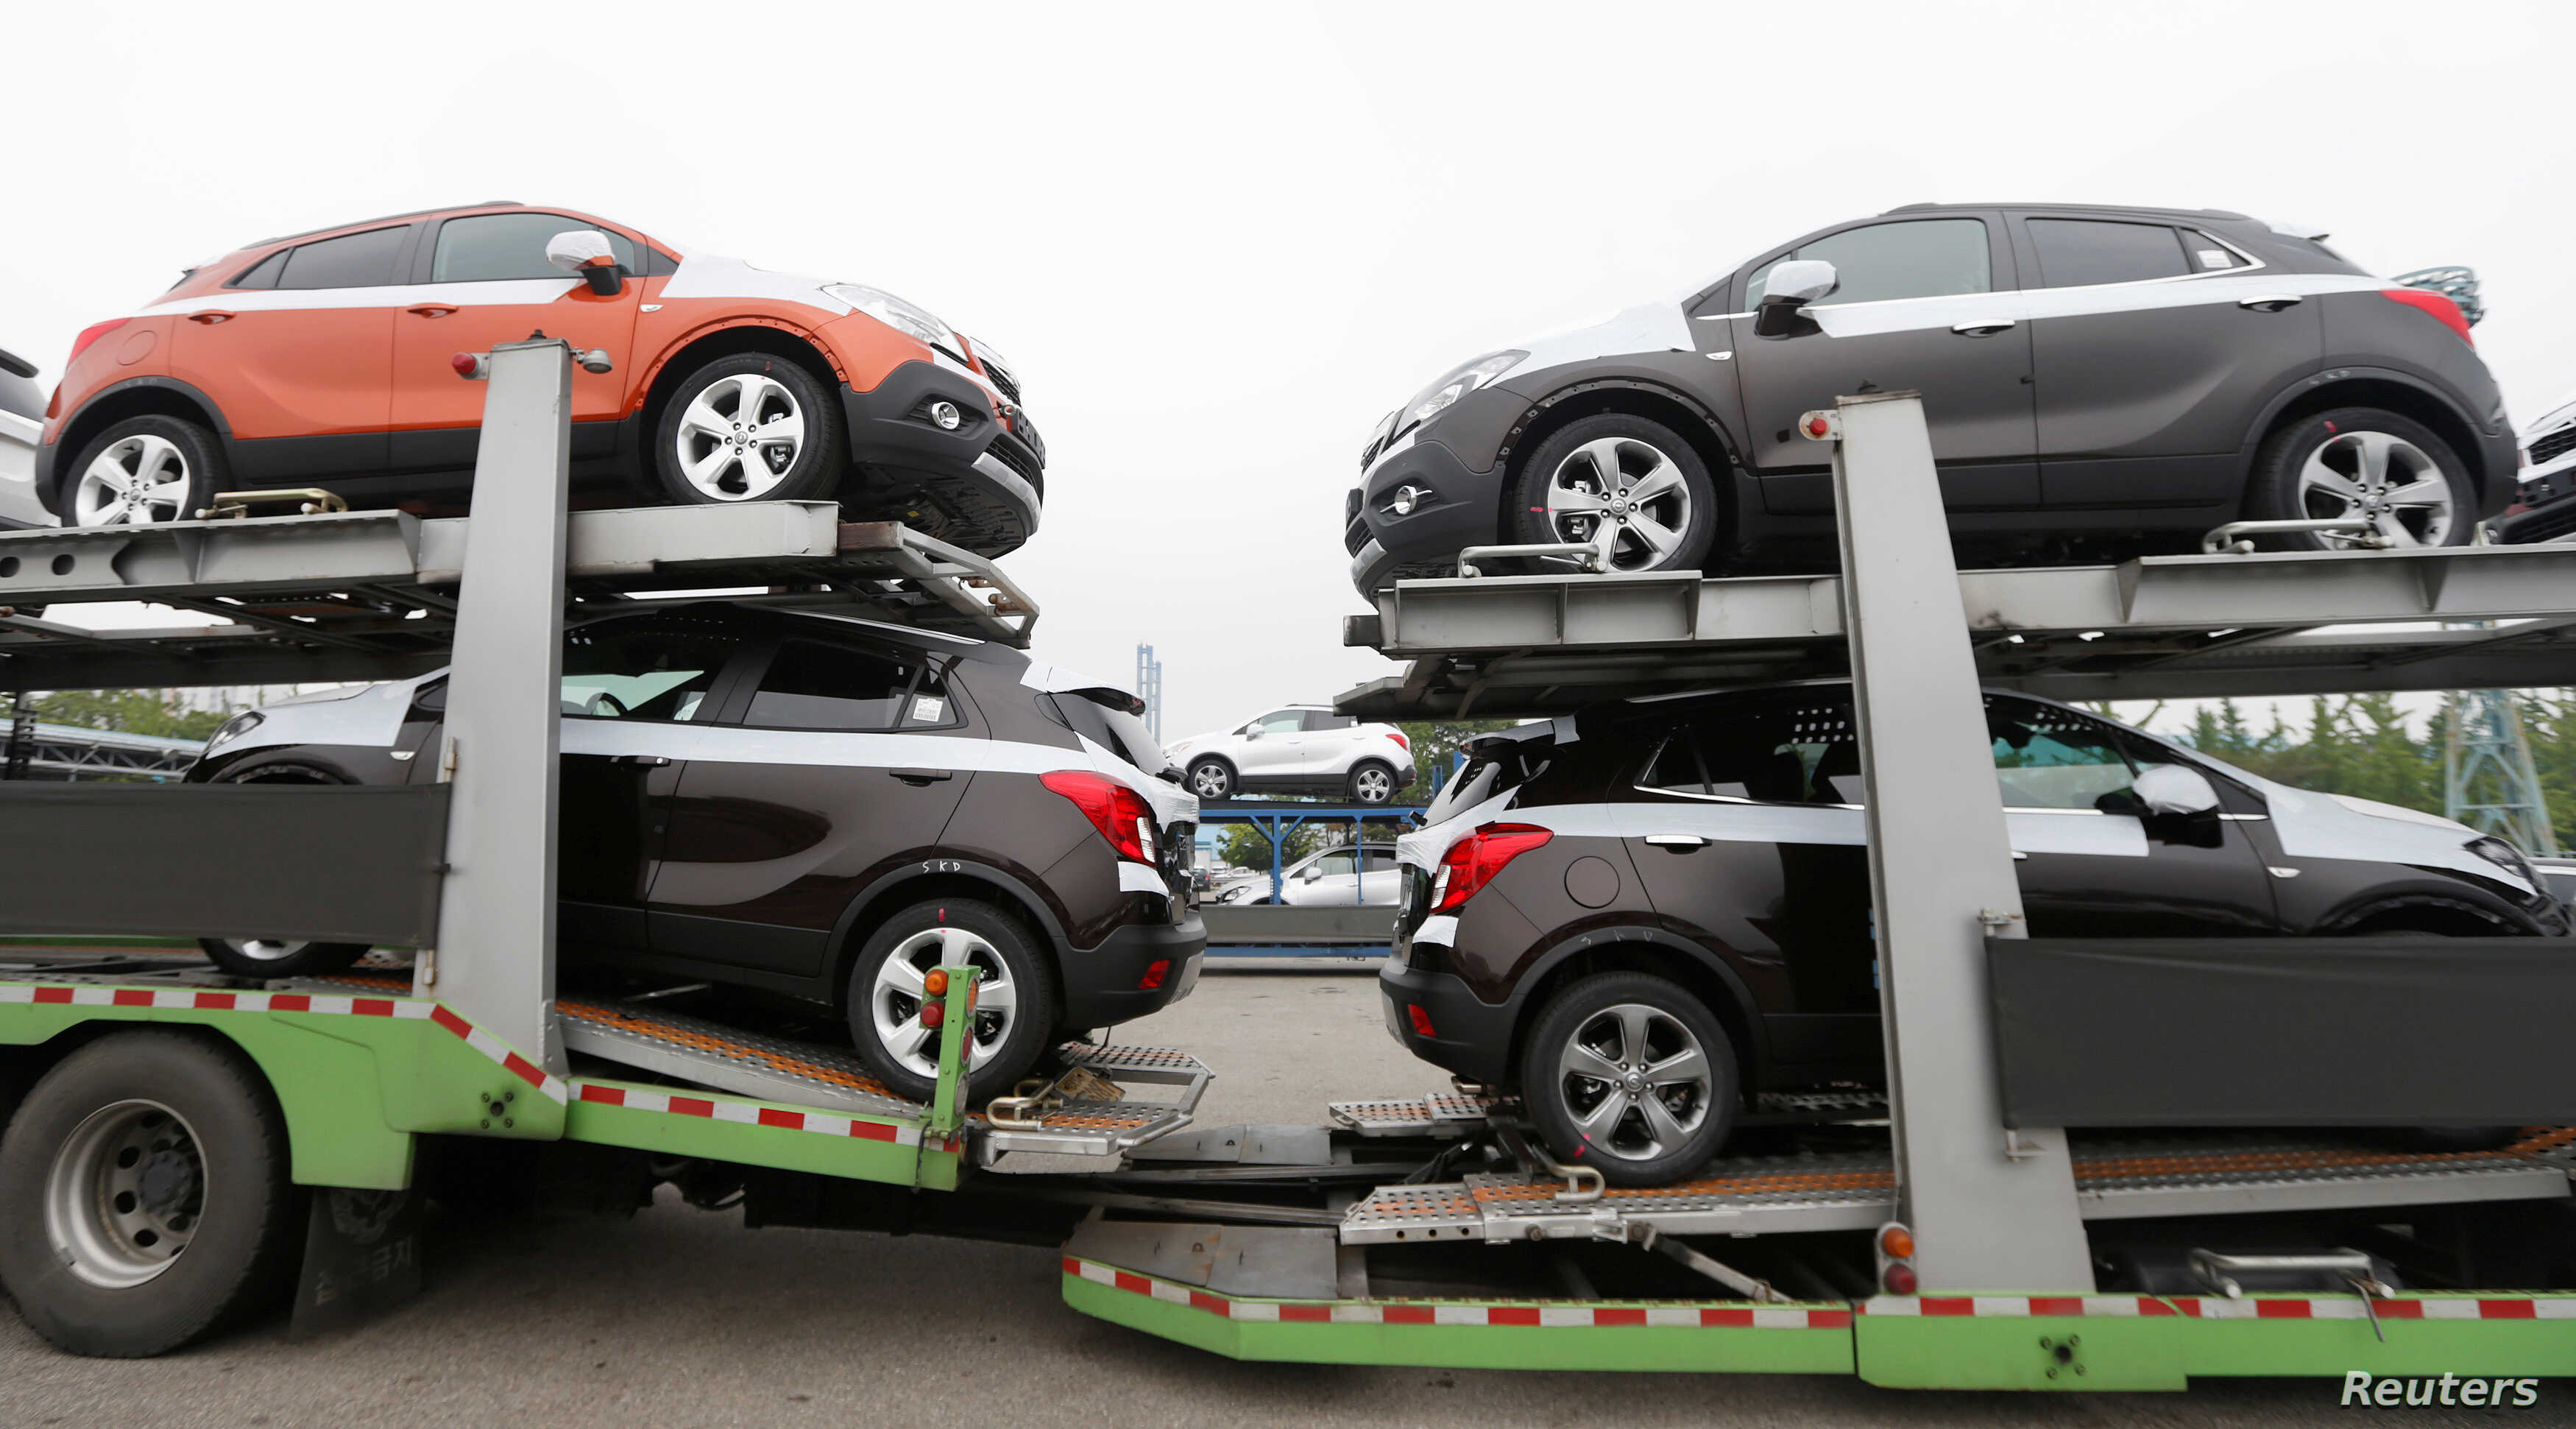 FILE - Cars made by GM Korea are seen on trucks in a yard of GM Korea's Bupyeong plant before they are transported to a port for export, in Incheon, west of Seoul, Aug. 9, 2013.